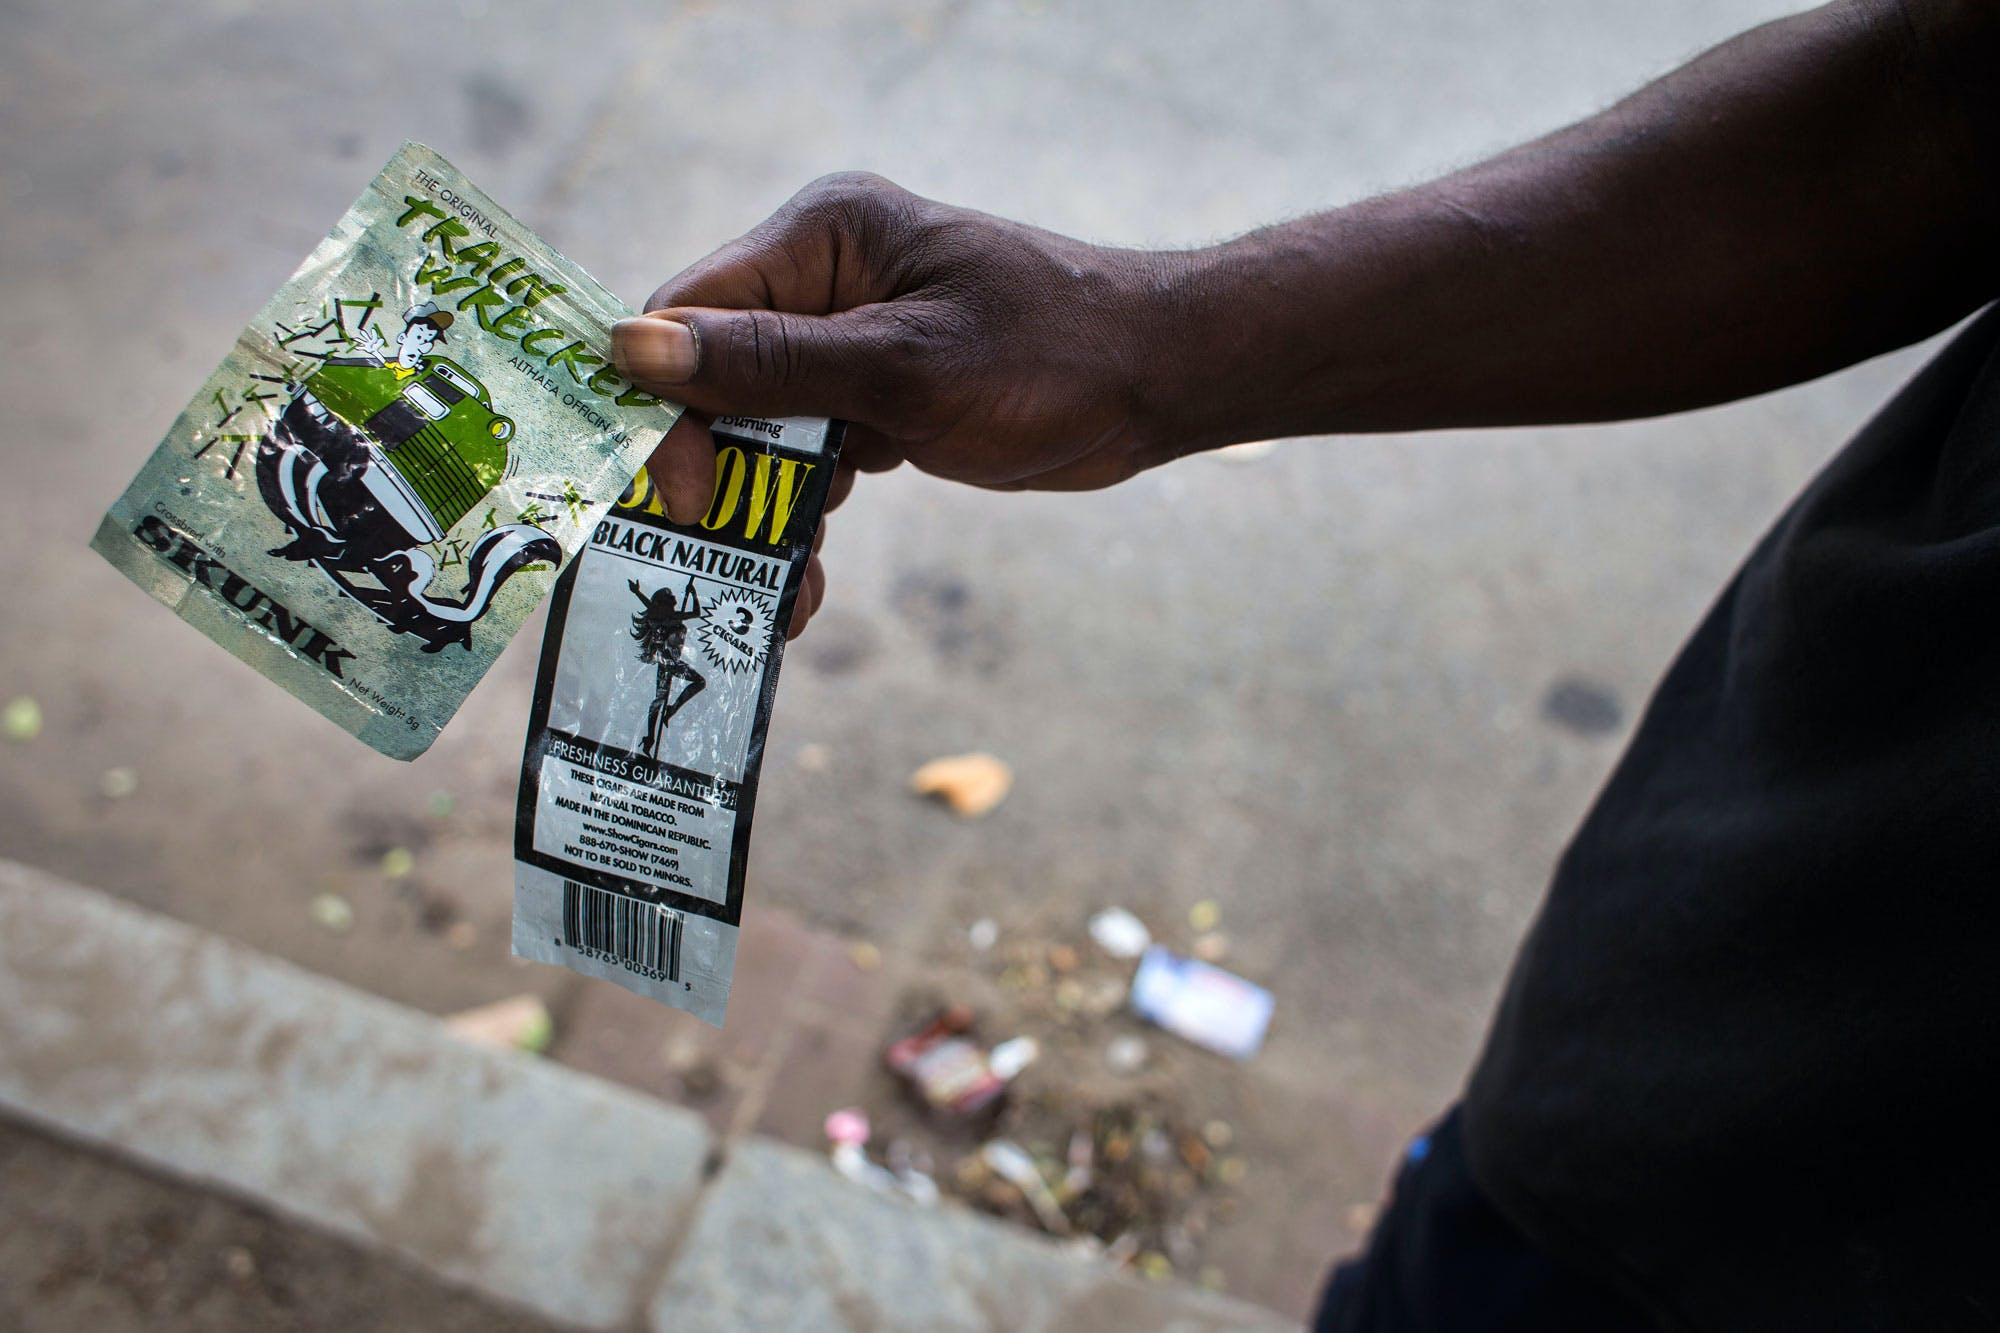 More people hospitalized by synthetic cannabis laced with rat poison Two Dead and Dozens Hospitalized By Synthetic Cannabis in Wisconsin